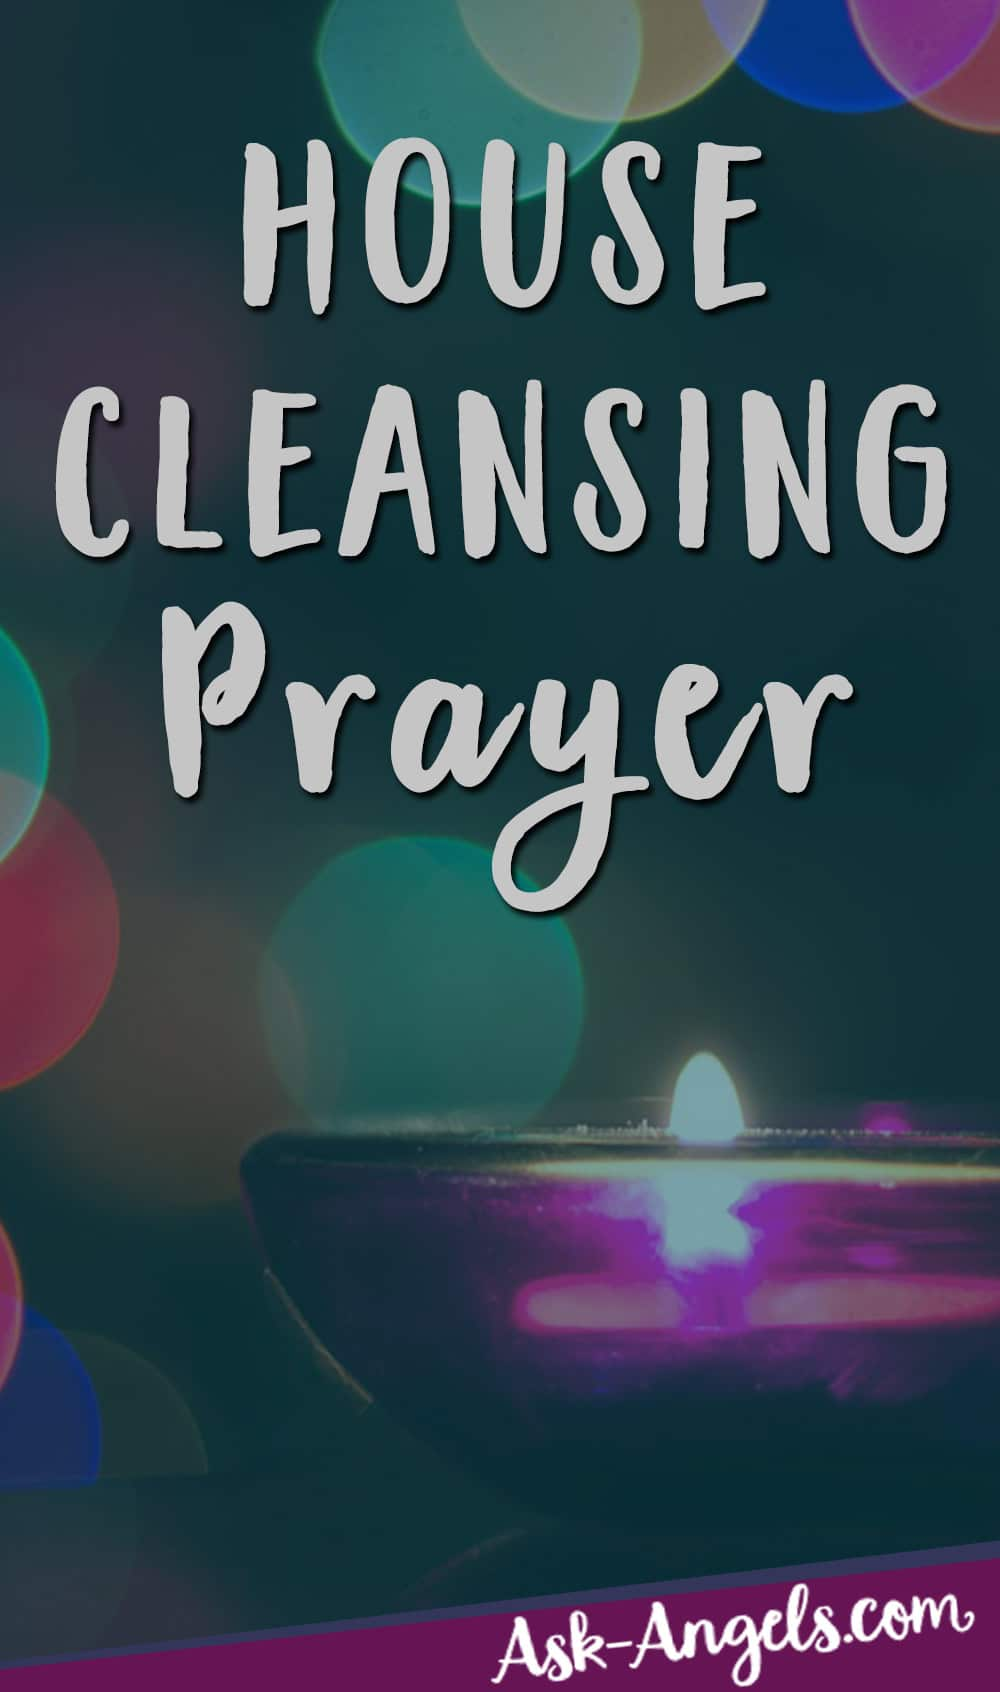 House Cleansing Prayer